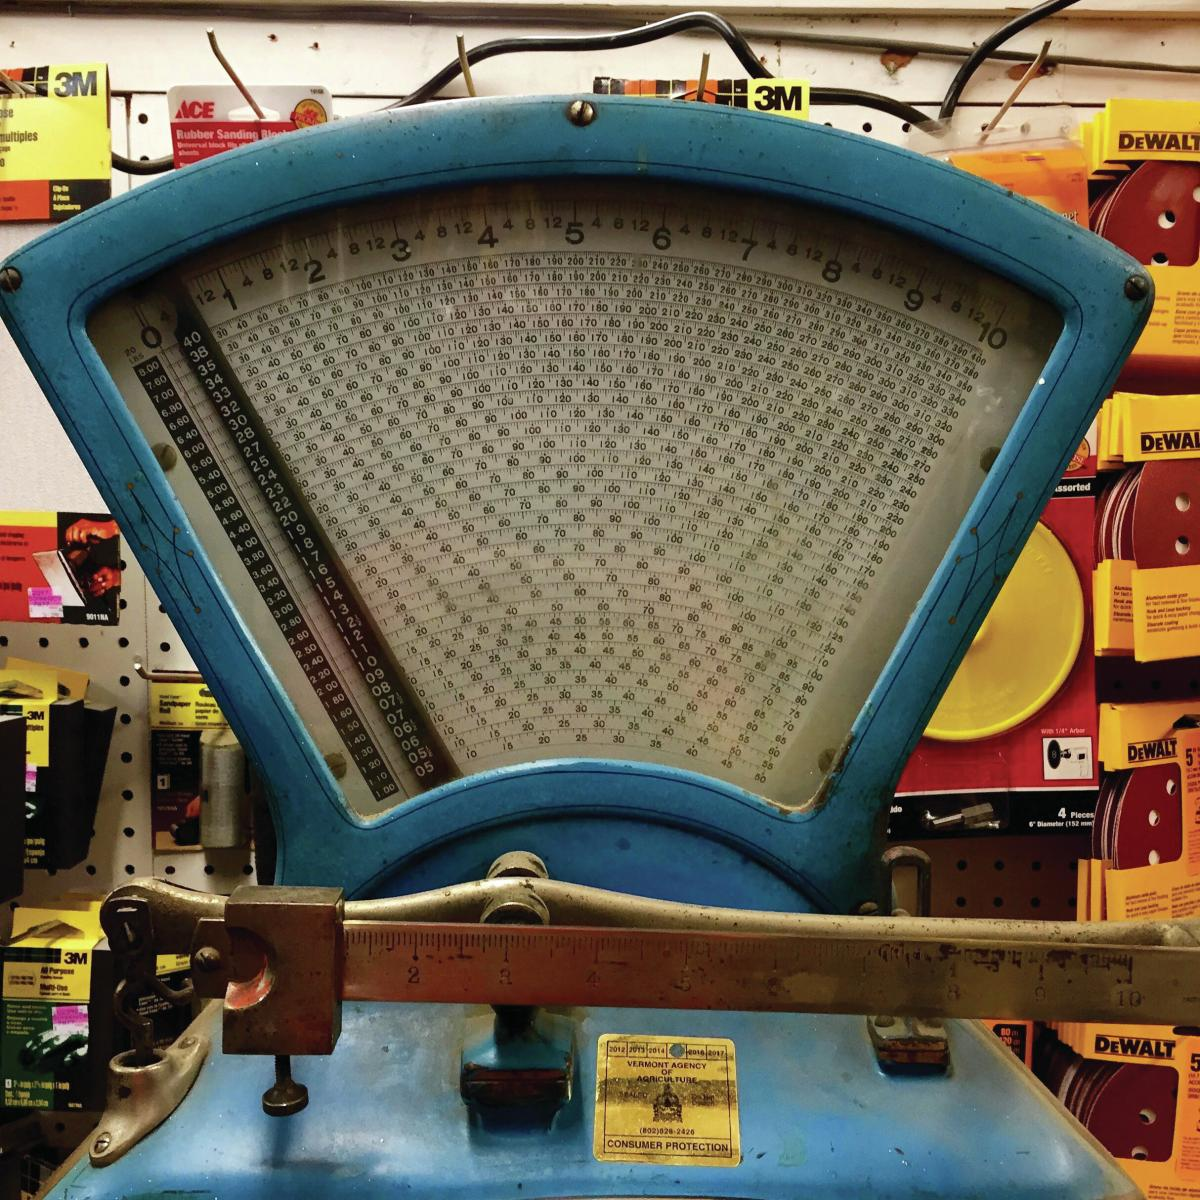 Sharlet took this photo of a scale at his local hardware store while buying his daughter Play-Doh.